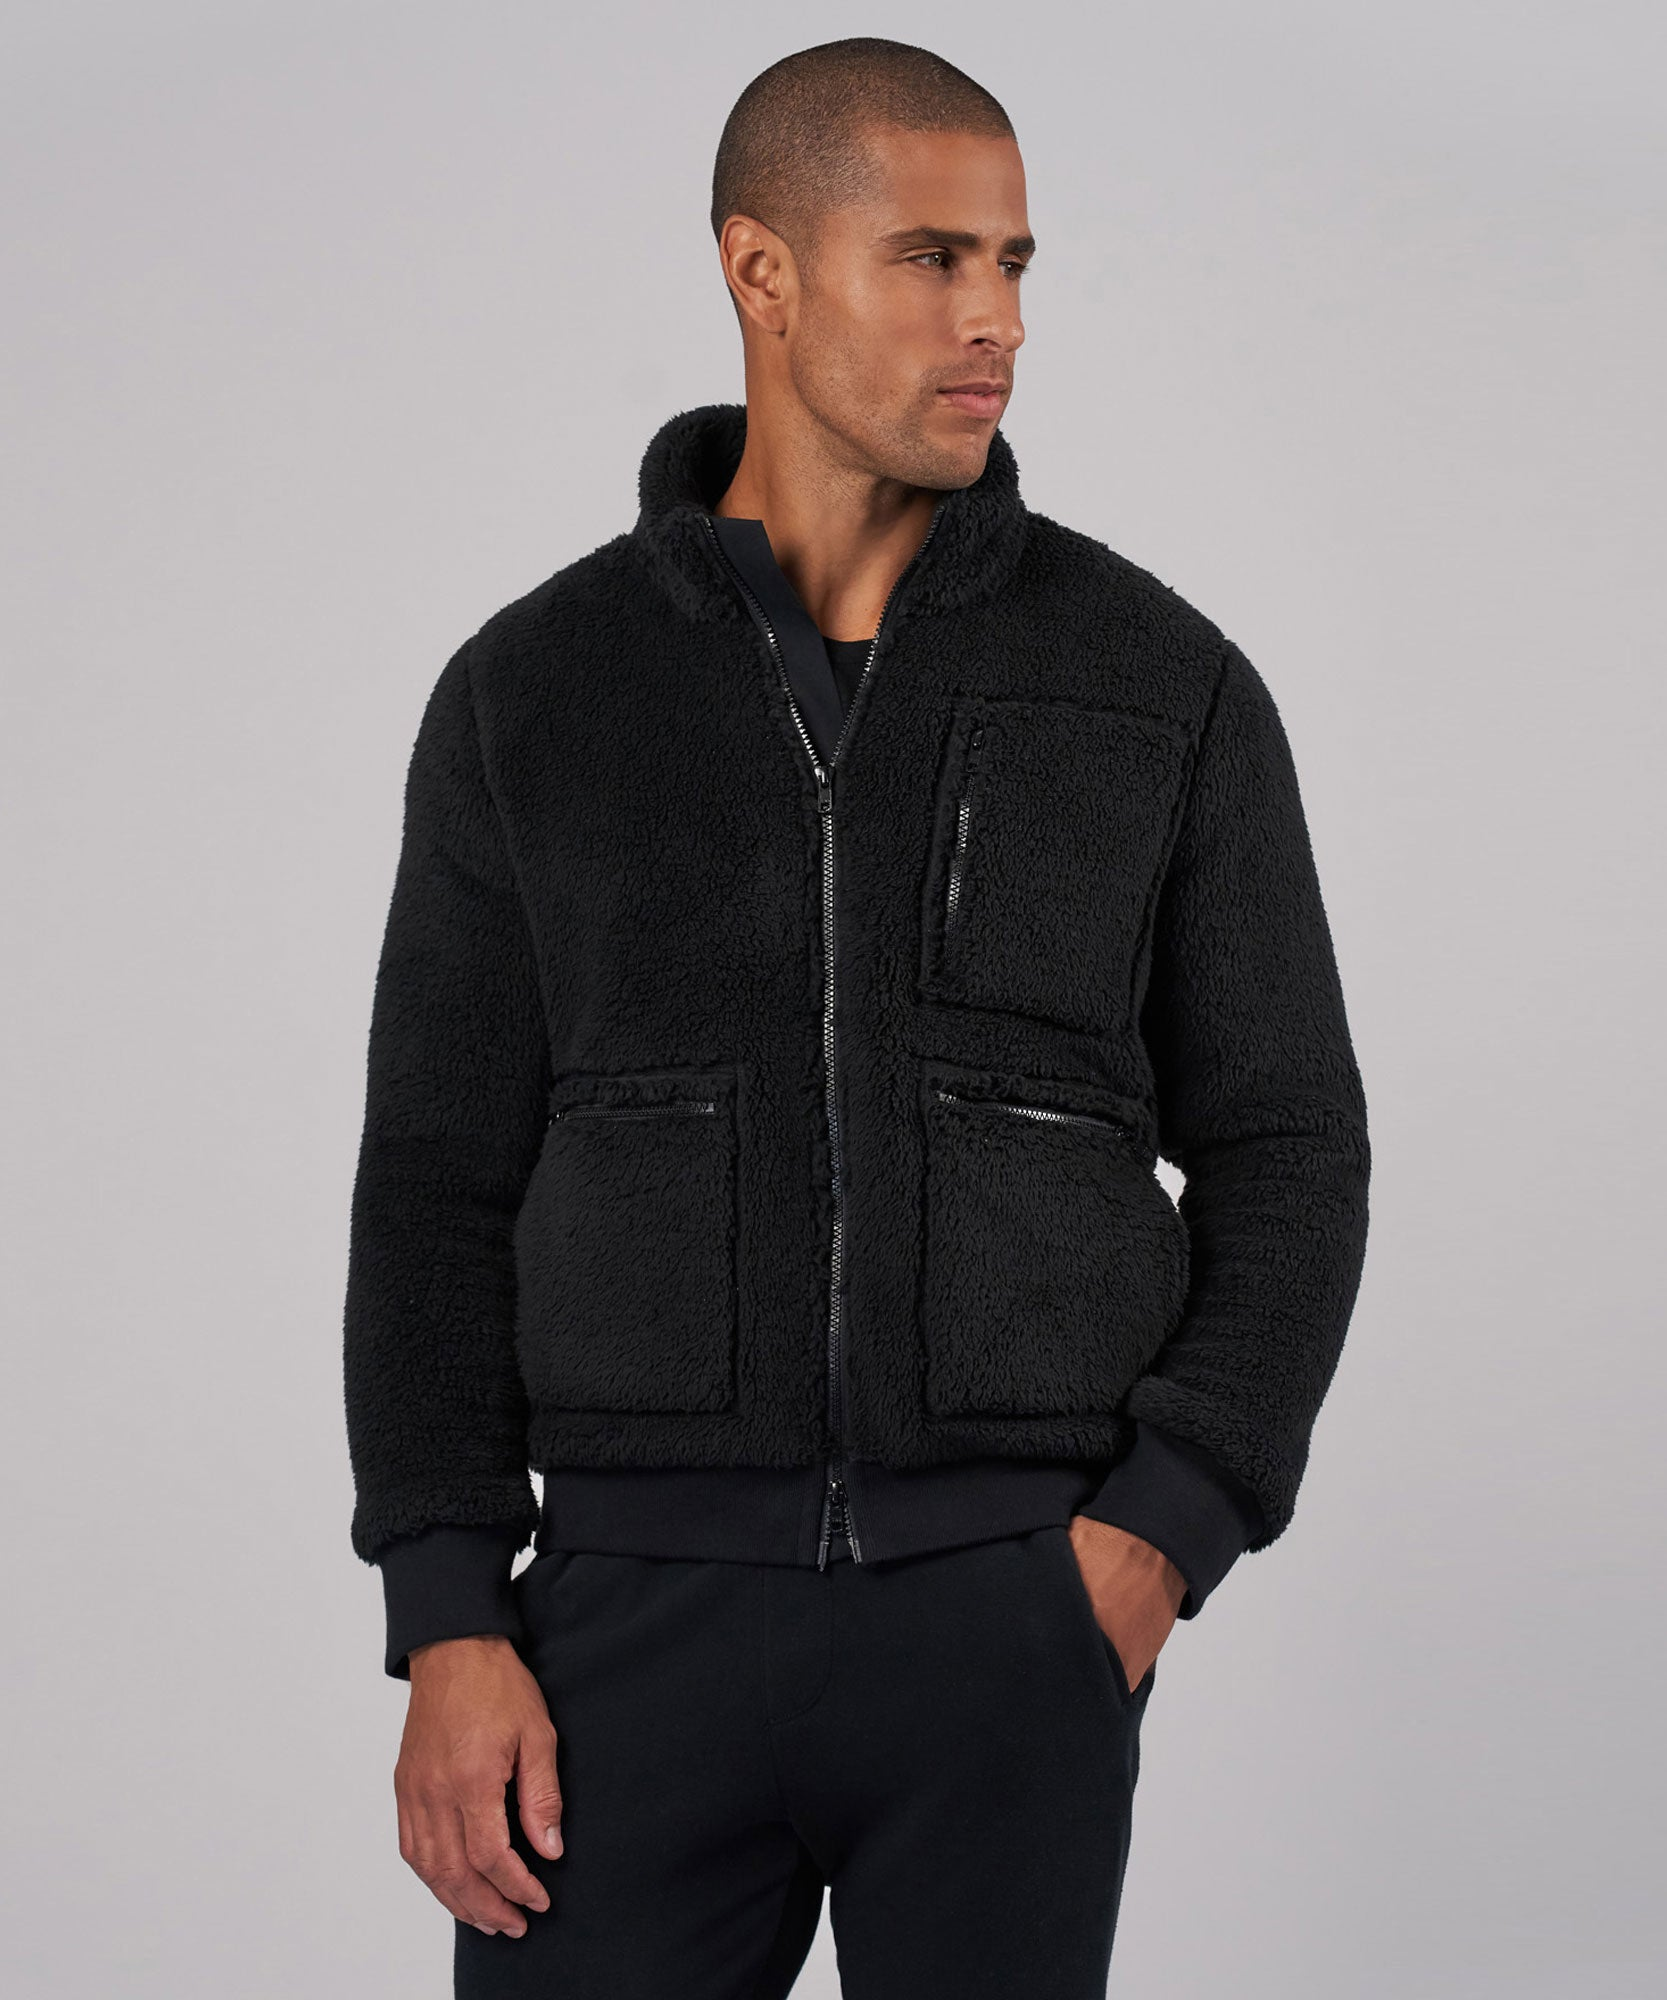 Black Sherpa Zip-Up Jacket - Men's Jacket by ATM Anthony Thomas Melillo